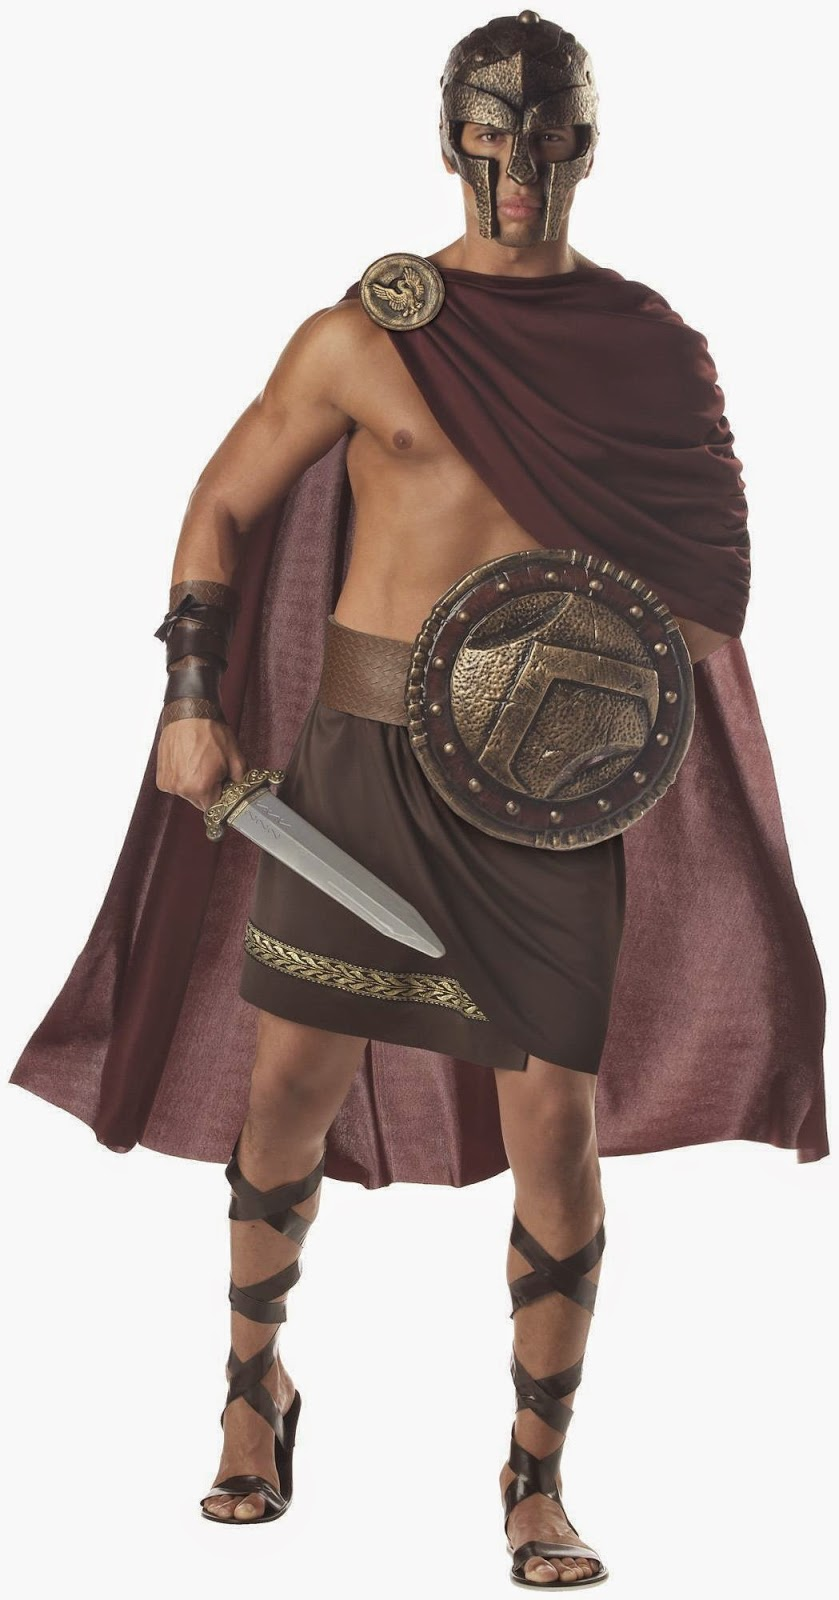 http://www.partybell.com/p-8324-spartan-warrior-adult-costume.aspx?utm_source=Blog&utm_medium=Social&utm_campaign=Celebrate-greek-costume-ideas